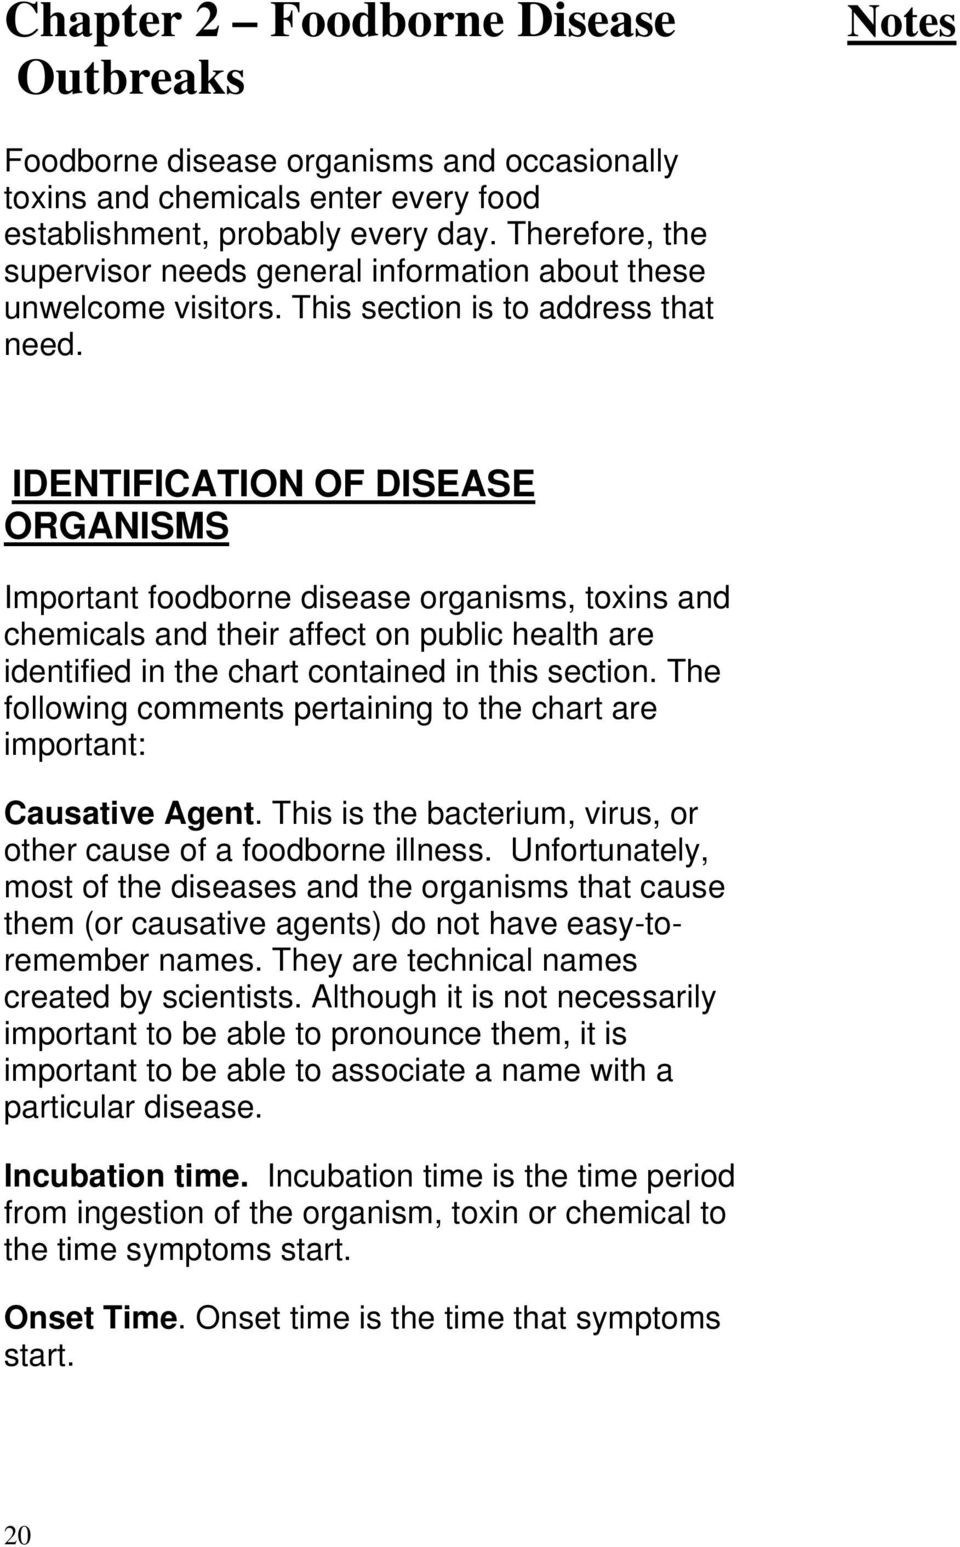 IDENTIFICATION OF DISEASE ORGANISMS Important foodborne disease organisms, toxins and chemicals and their affect on public health are identified in the chart contained in this section.